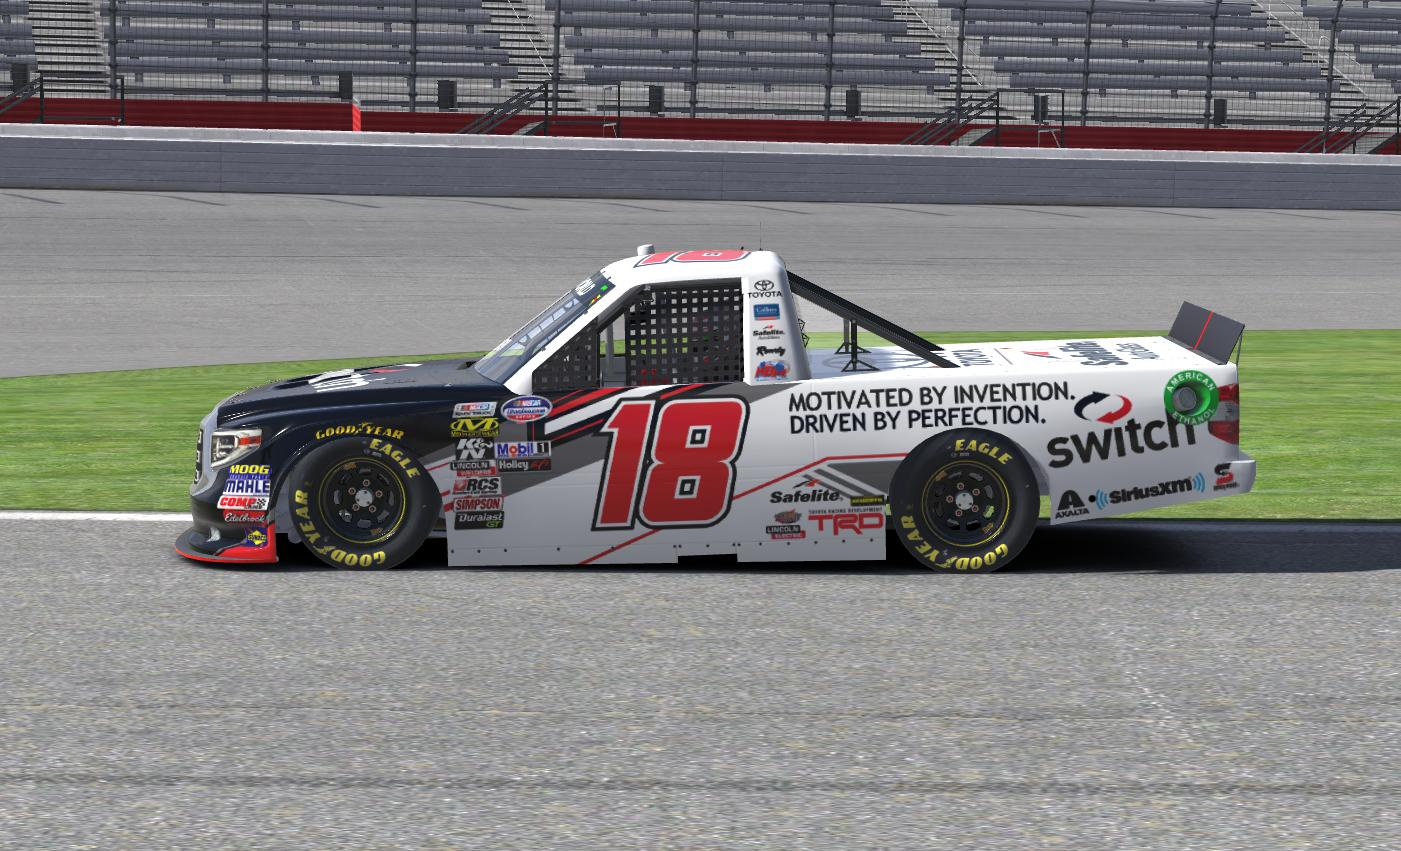 Preview of Switch Toyota Tundra (Noah Gragson Xfinity 2018) by Erik Le